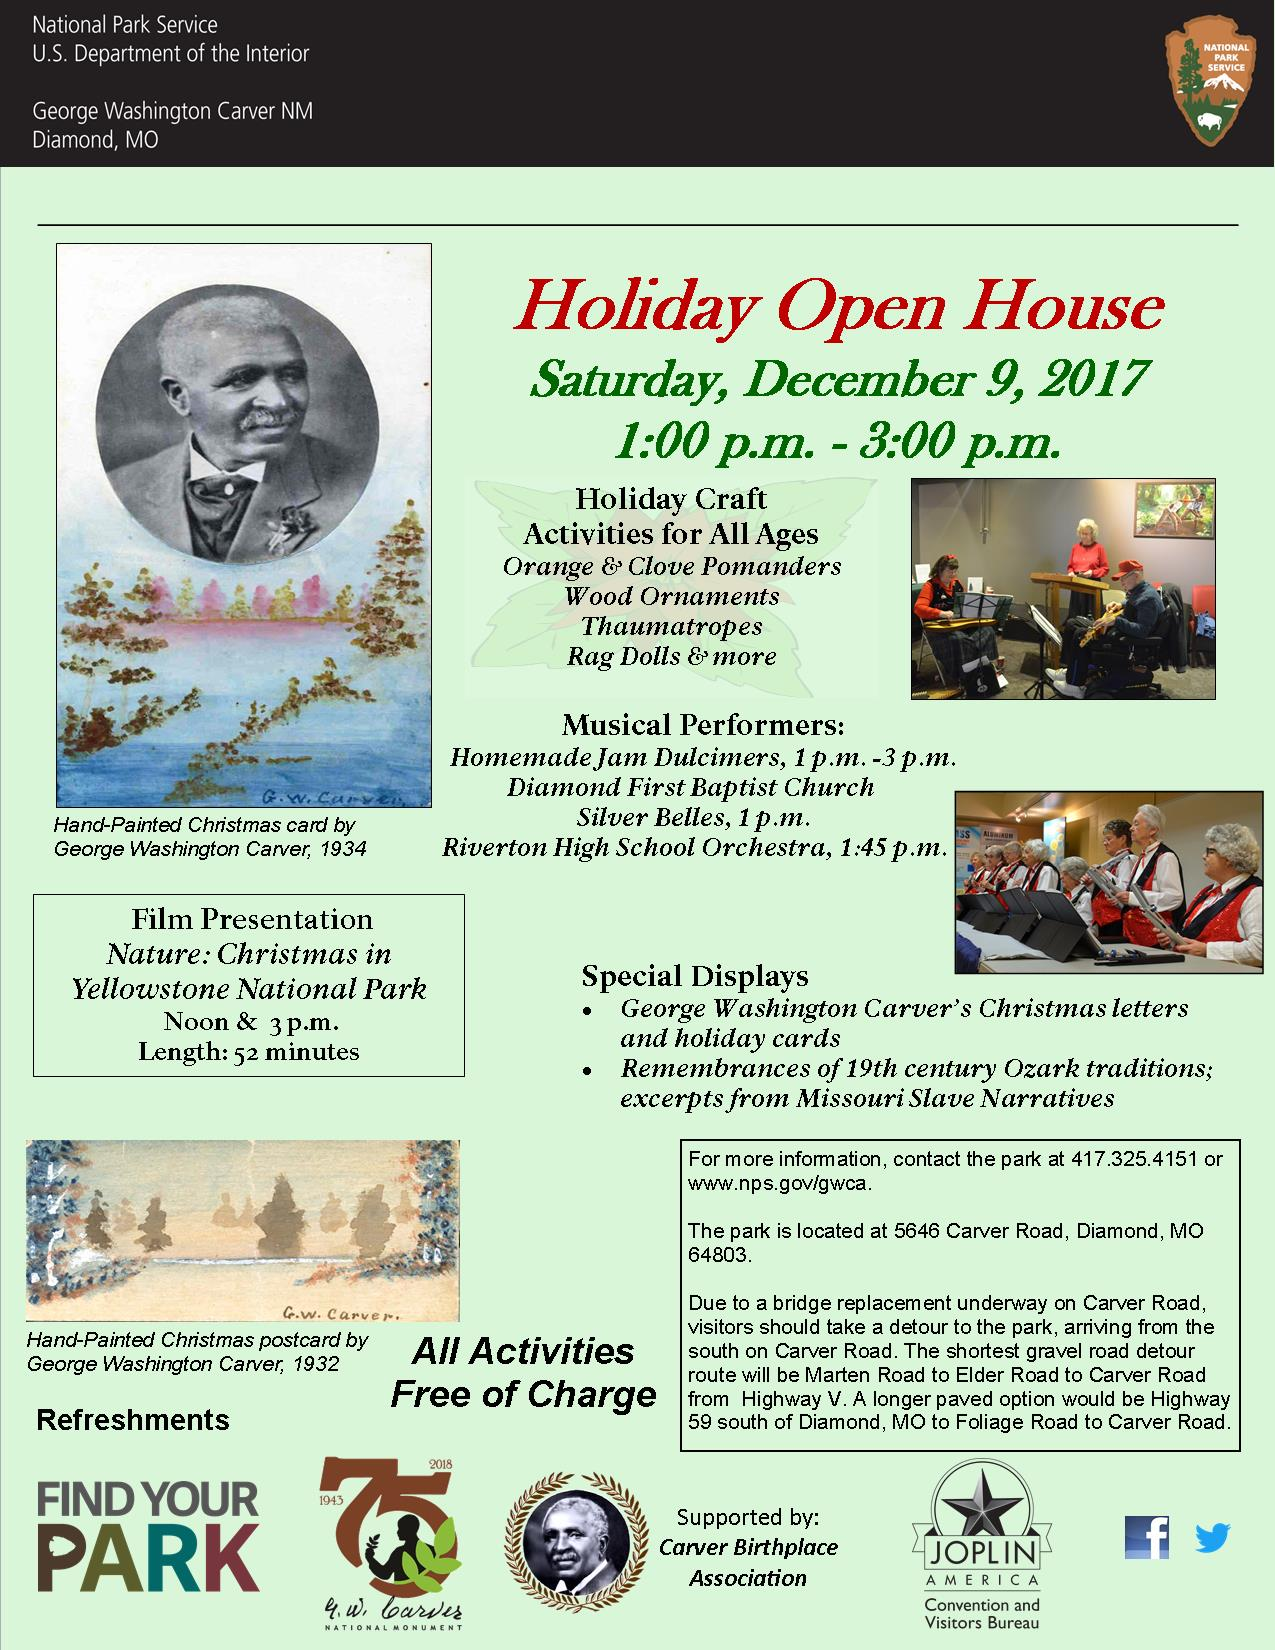 The image is a poster for an upcoming Holiday Open House special event. The image includes photographs of George Washington Carver and music performers. There is also informational text.